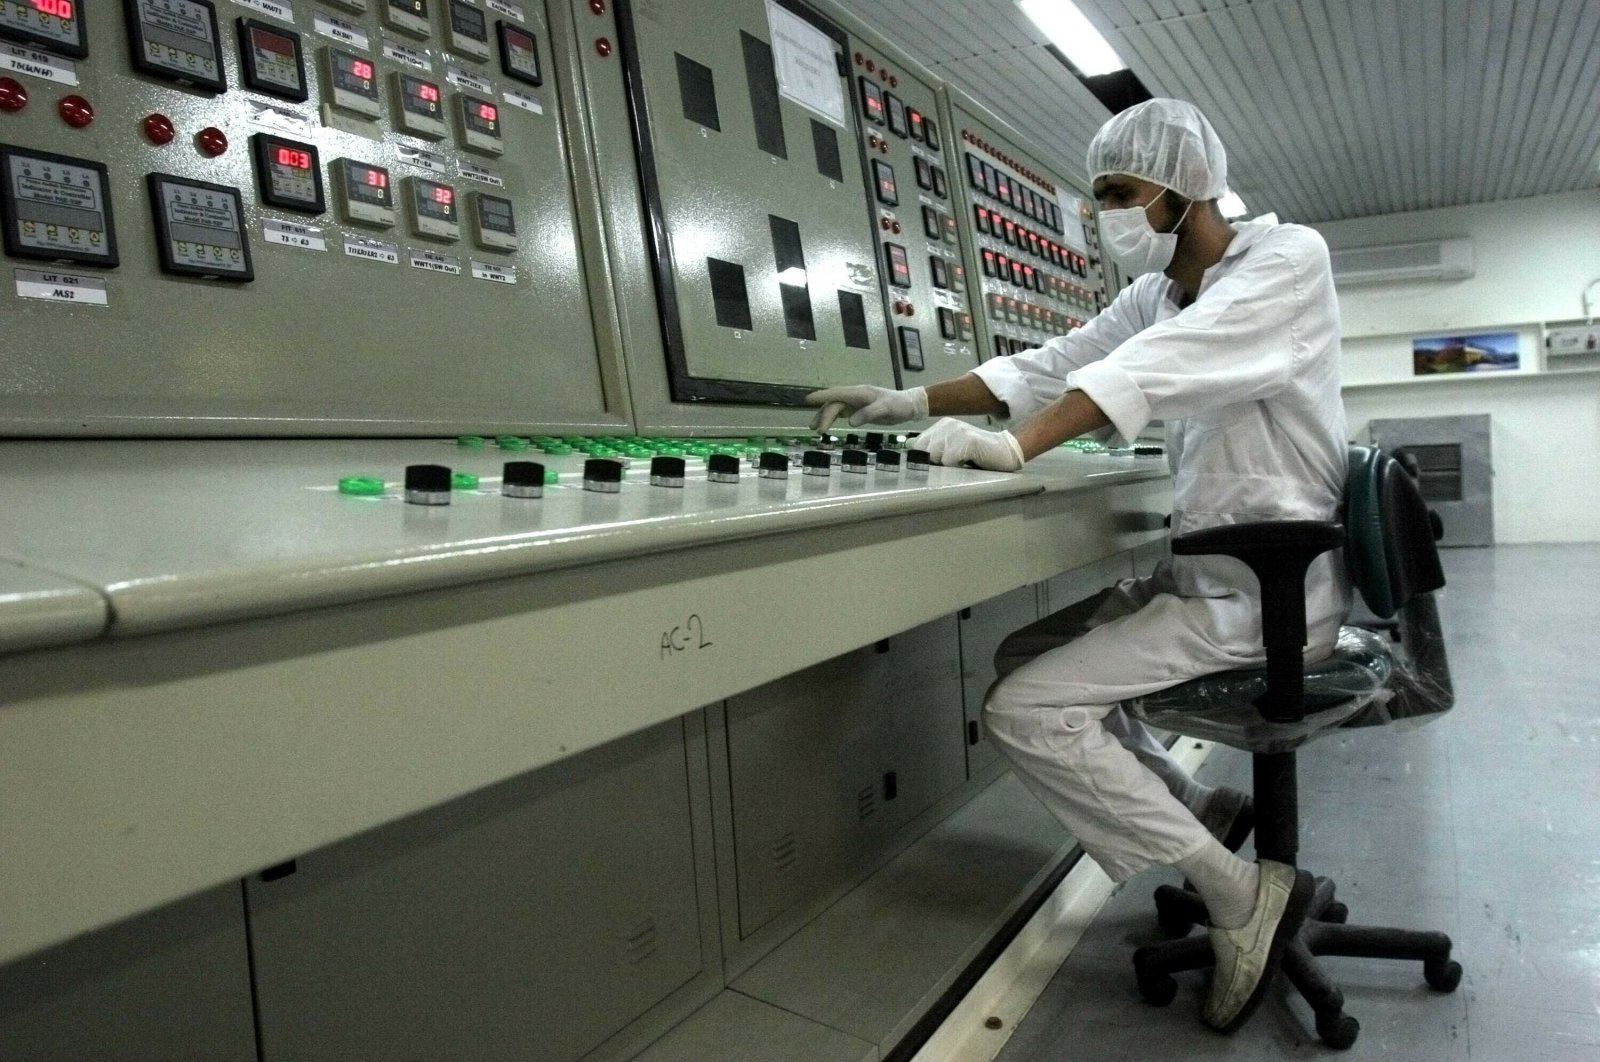 An Iranian technician works at the Uranium Conversion Facility just outside the city of Isfahan, Iran, Feb. 3, 2007. (AP Photo)